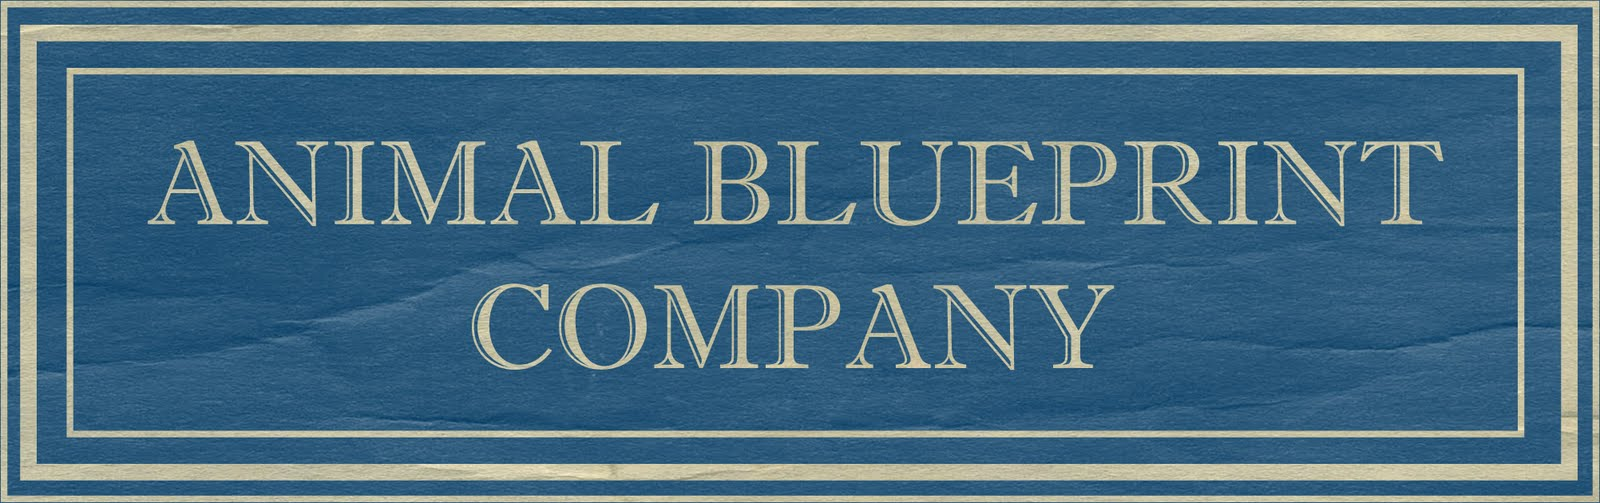 To you meet our new client animal blueprint company animal blueprint company designer of detailed dog portraits created in the original style of a 1950s blueprint complete with schematics and design notes malvernweather Gallery